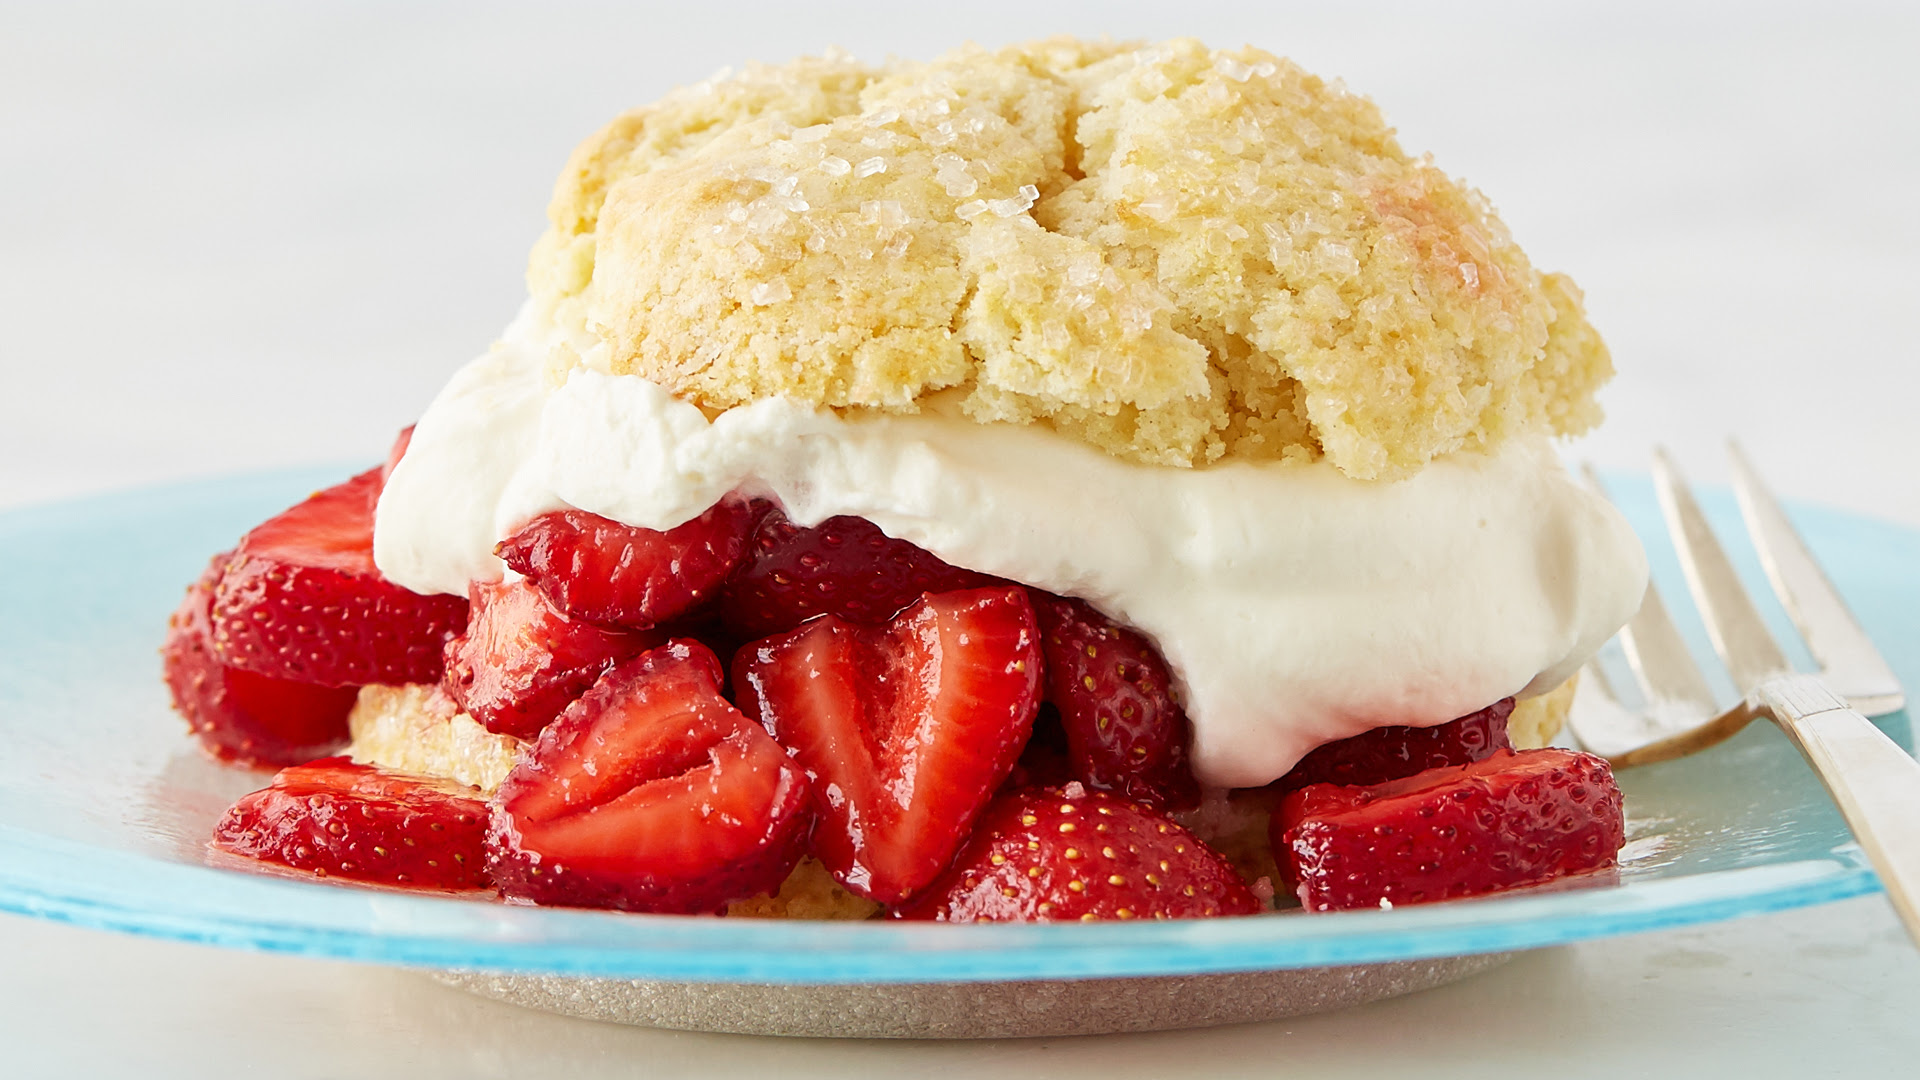 Classic Strawberry Shortcake Recipe Pbs Food